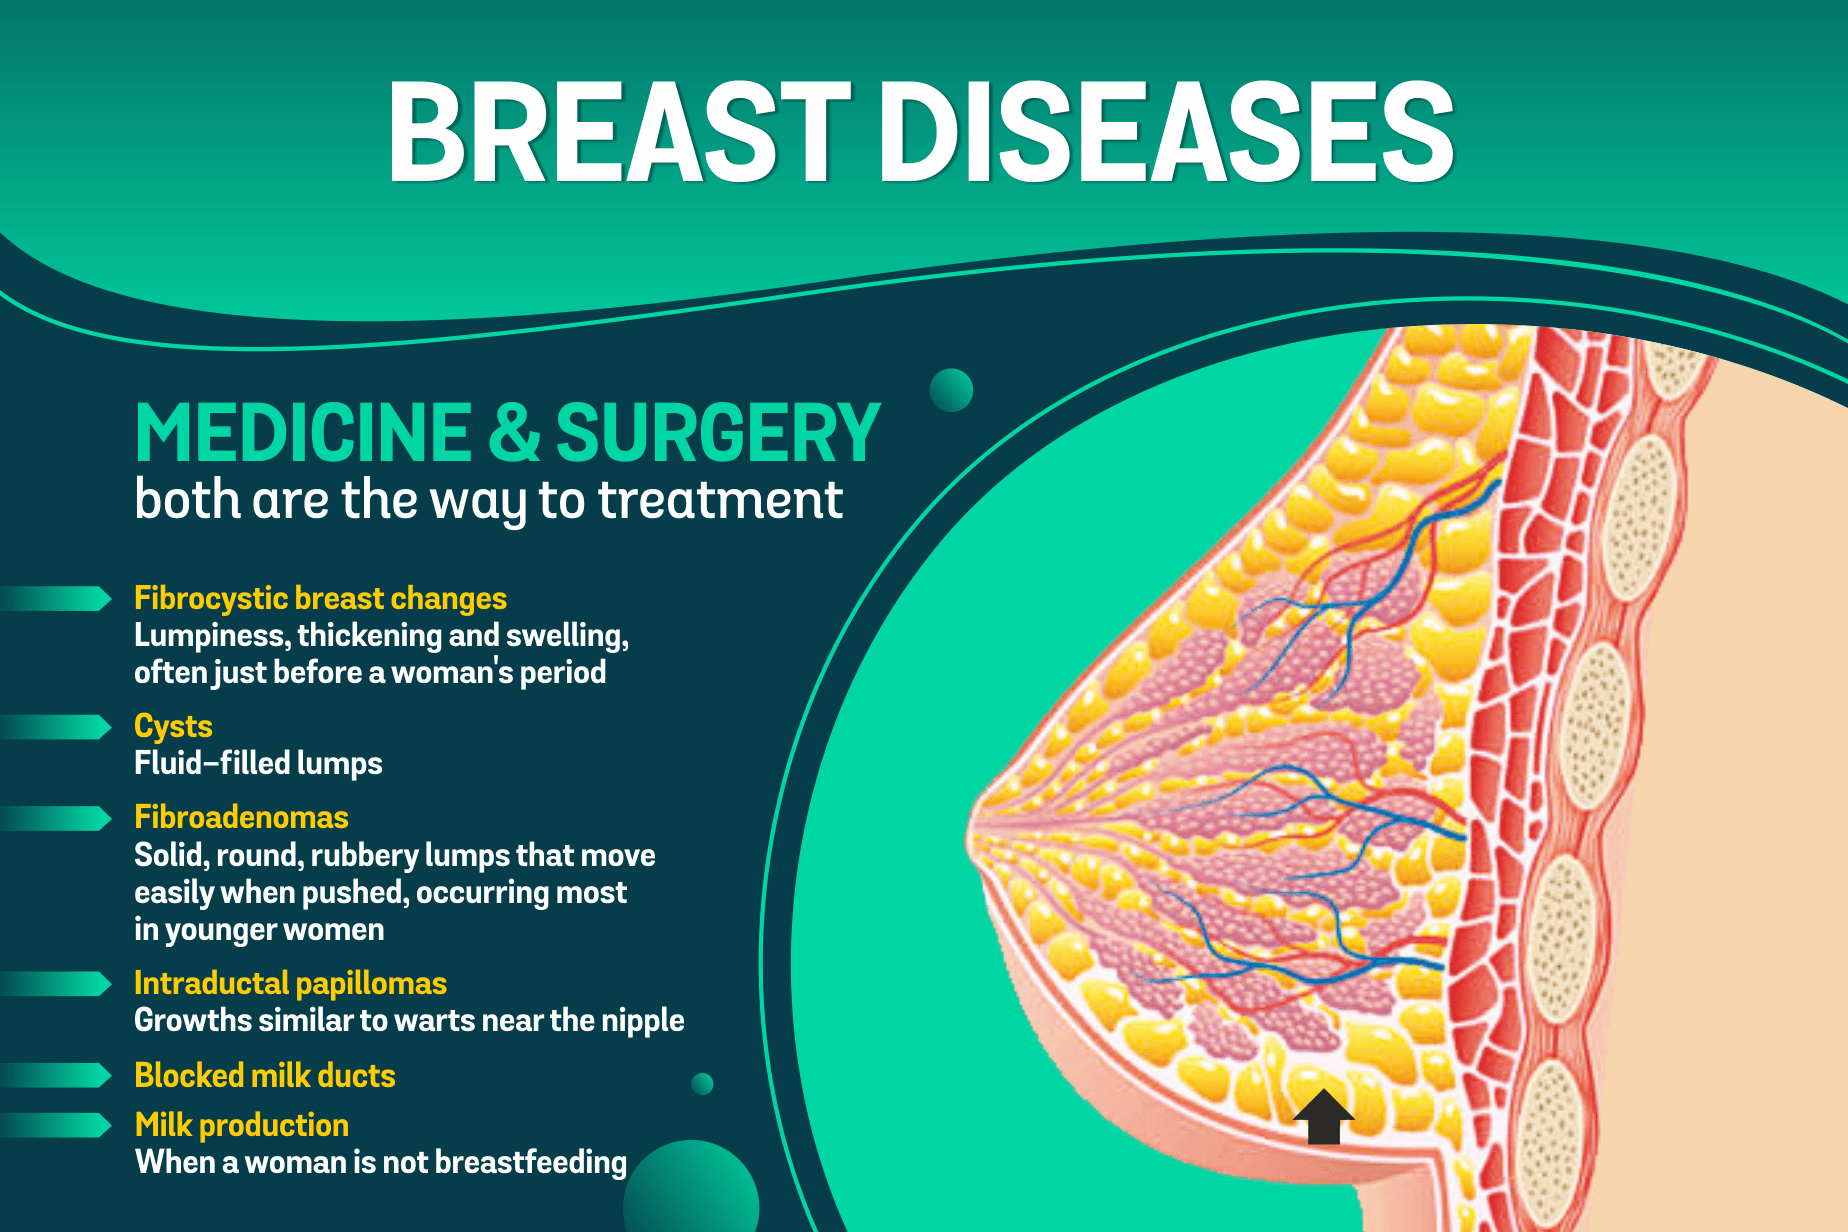 Breast doctor and surgeon in indore